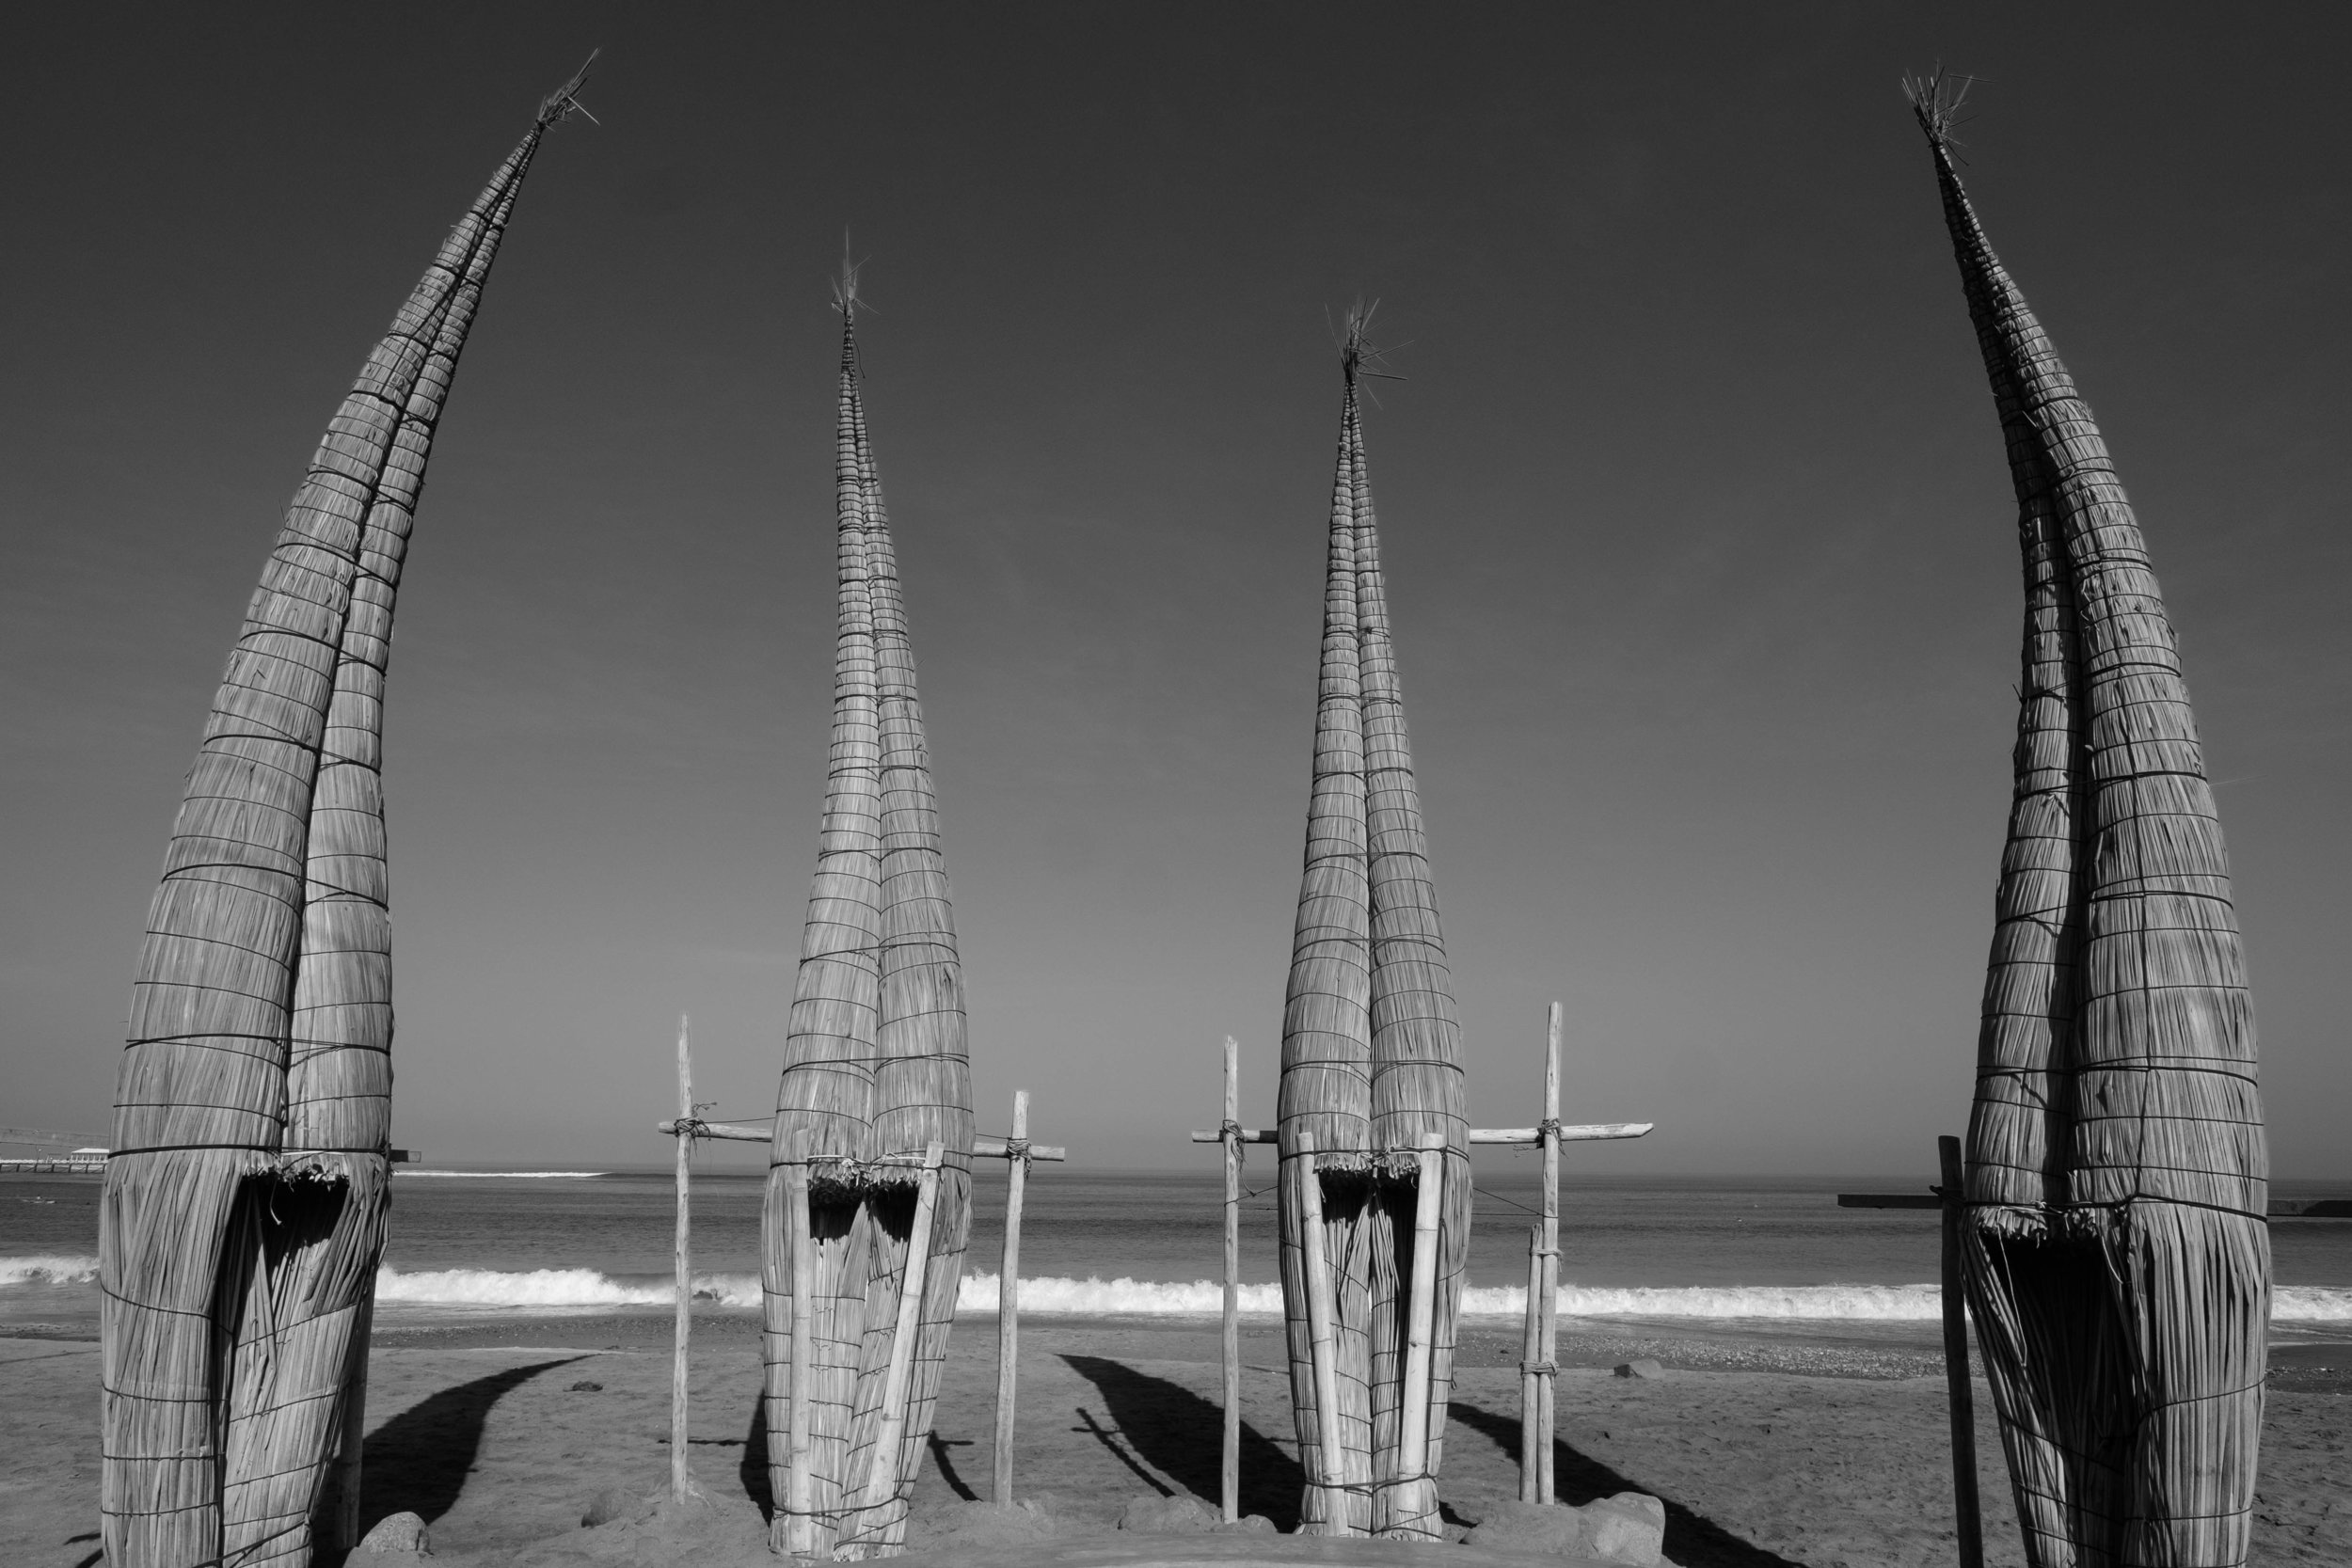 Caballitos de Totora in Huanchaco, where Otra Cosa Network is located